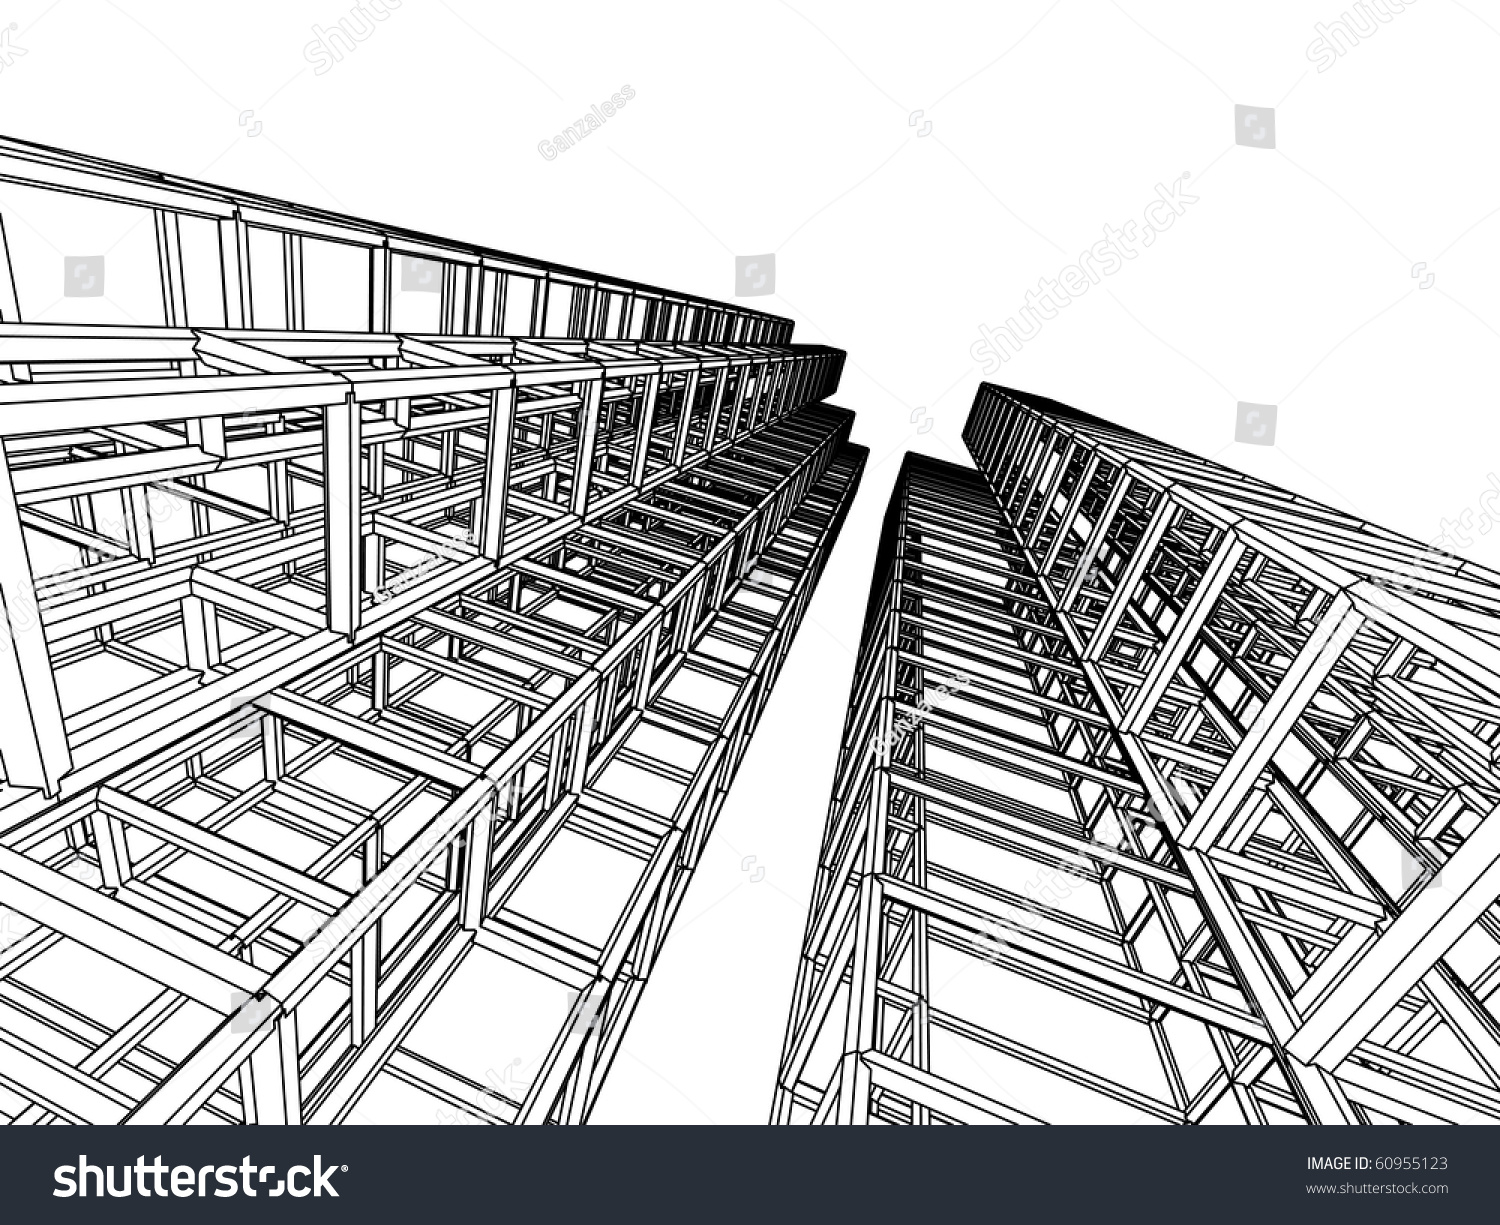 Sketch Of An Abstract Architecture Stock Vector ...